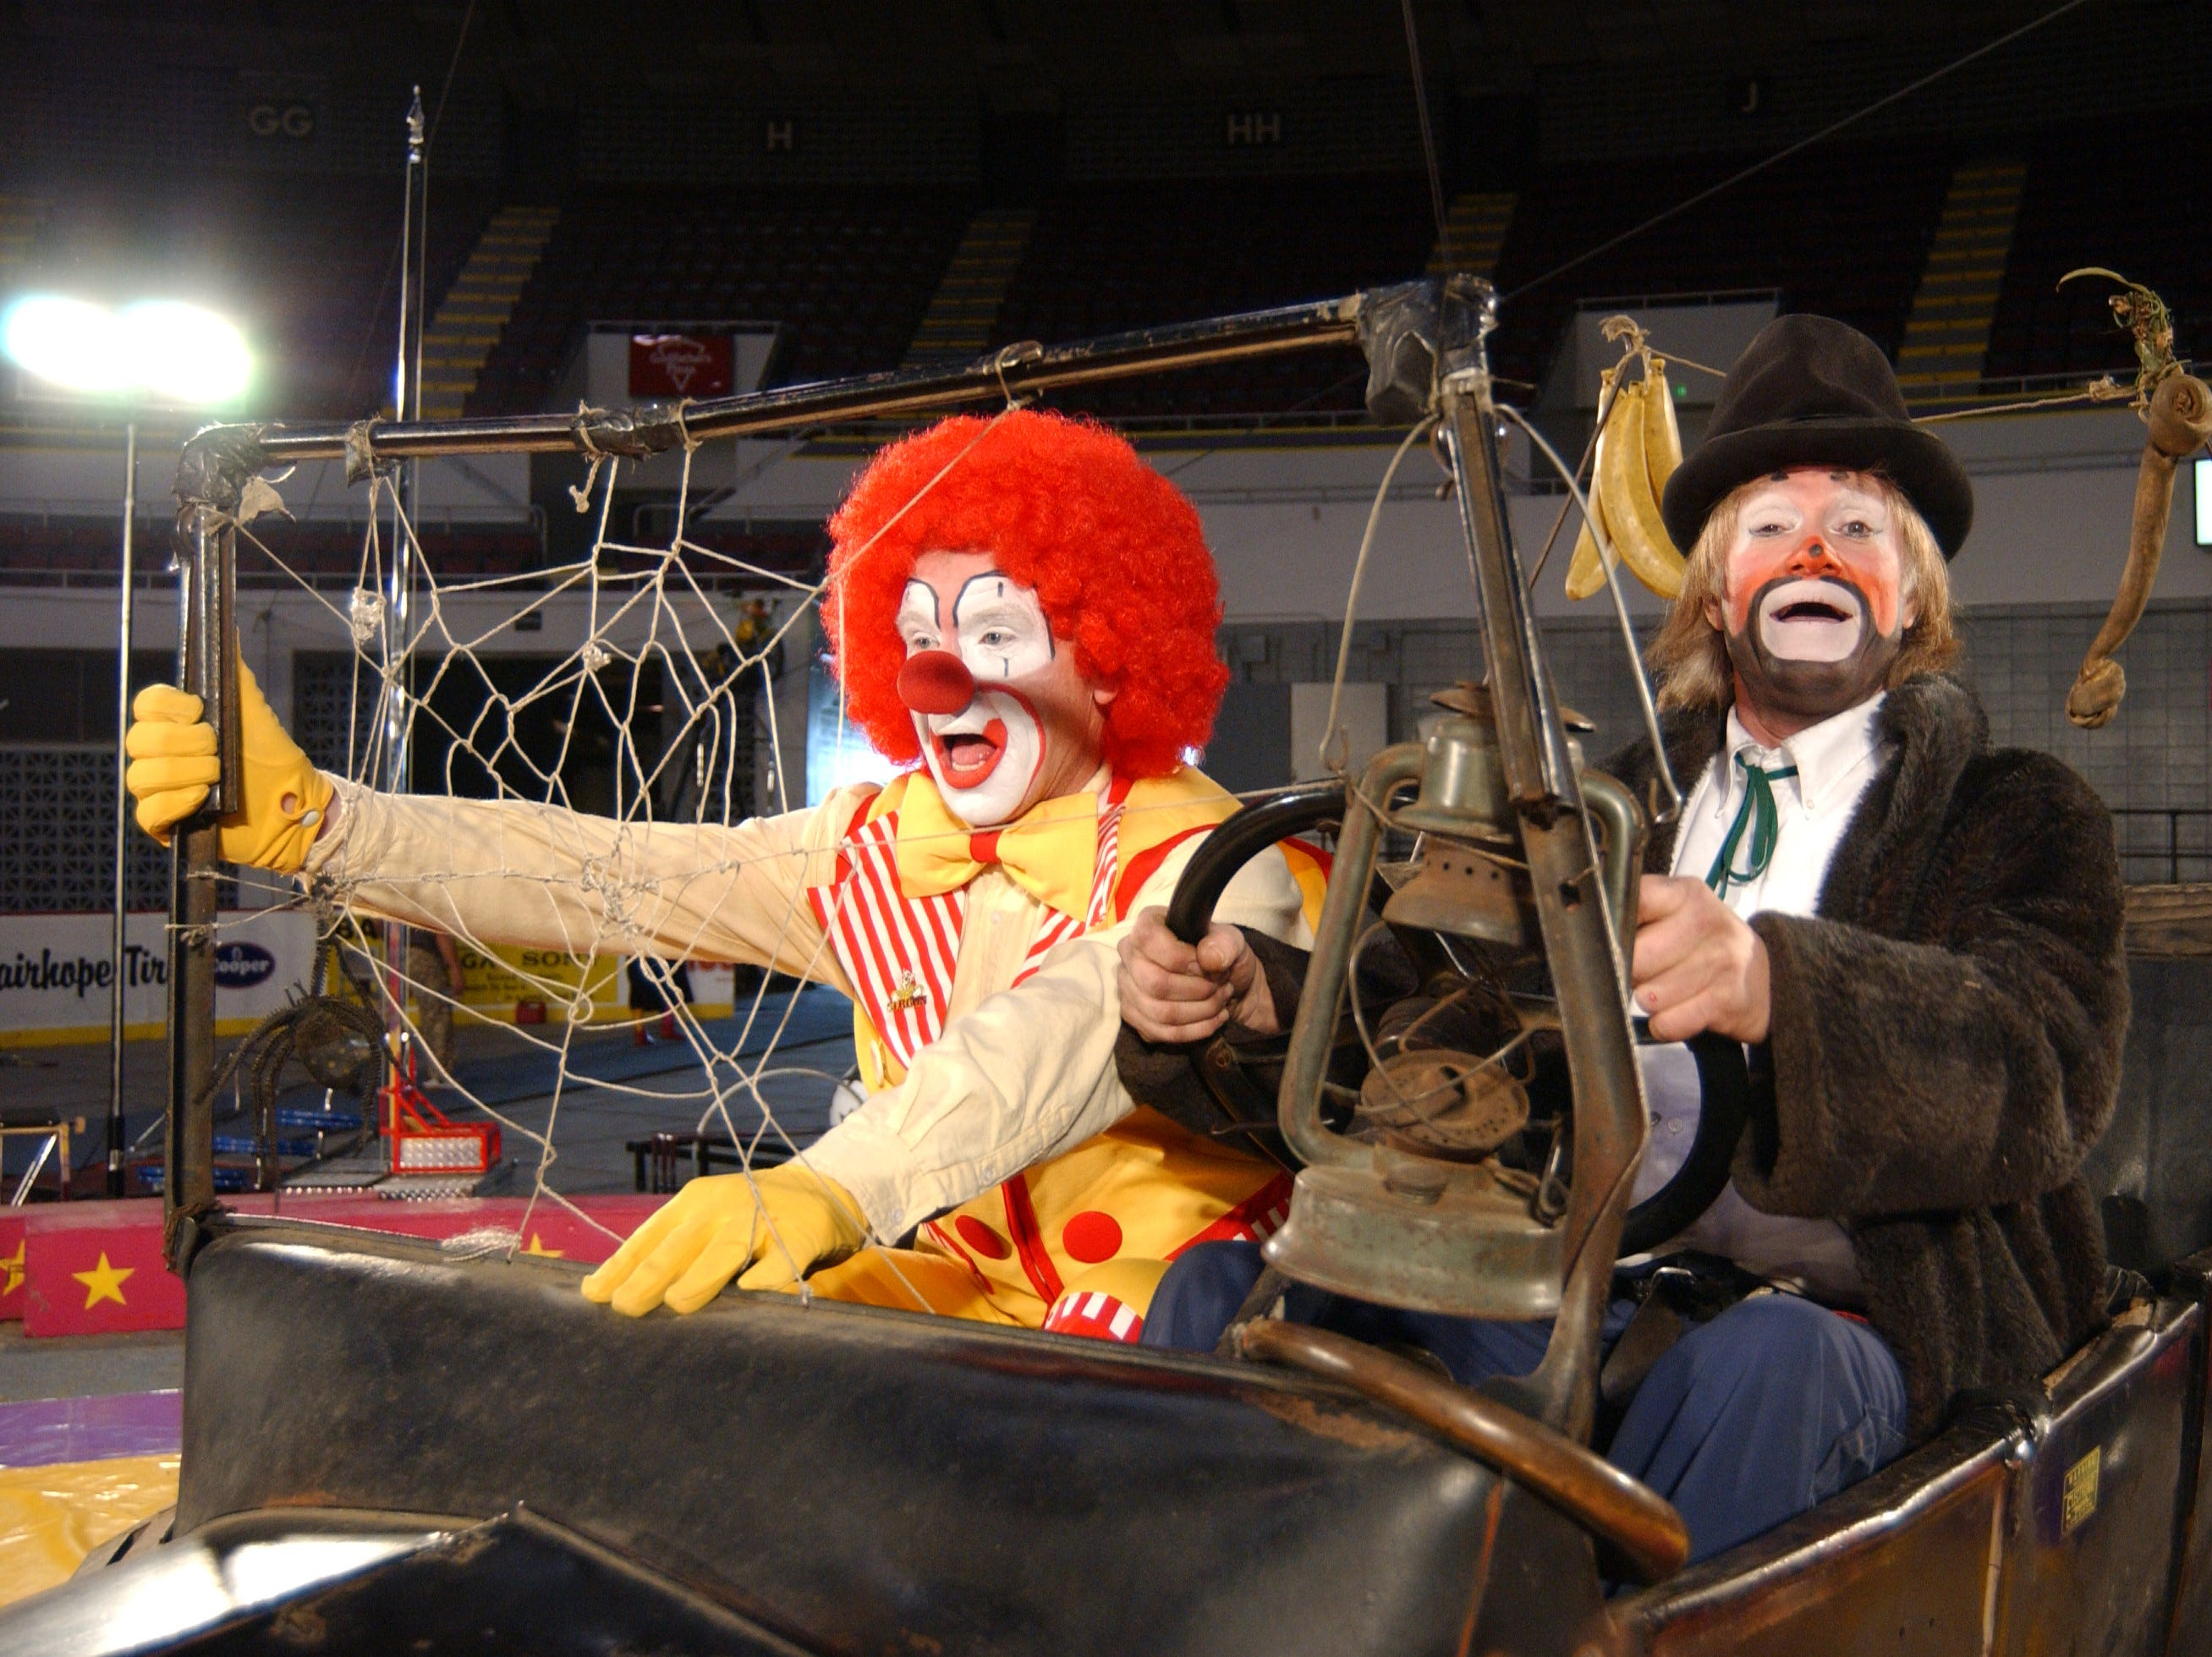 The Garden Bros. Circus performs in Beeville on Friday.